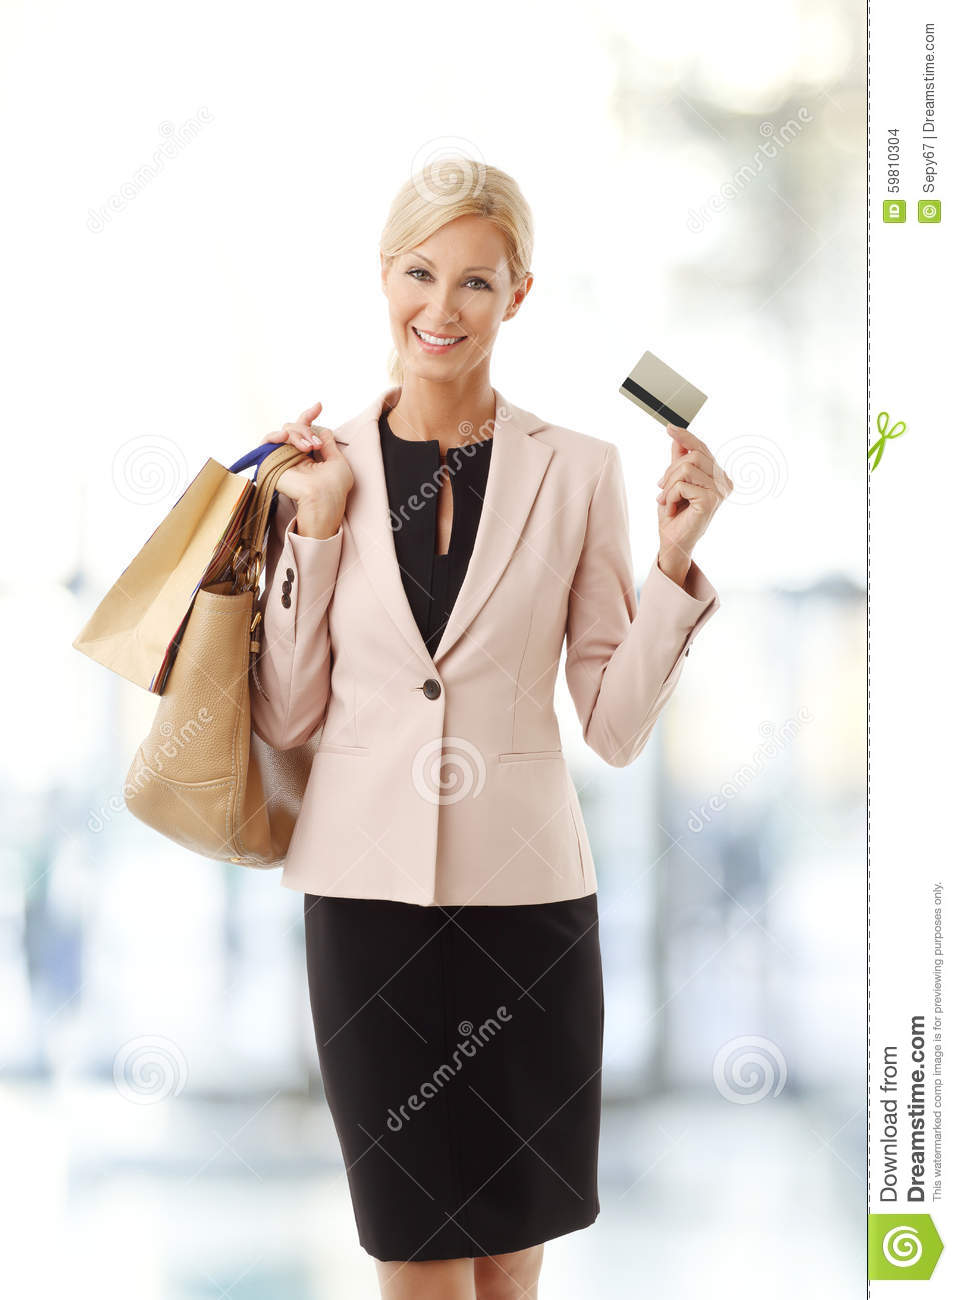 Credit cards for clothing stores